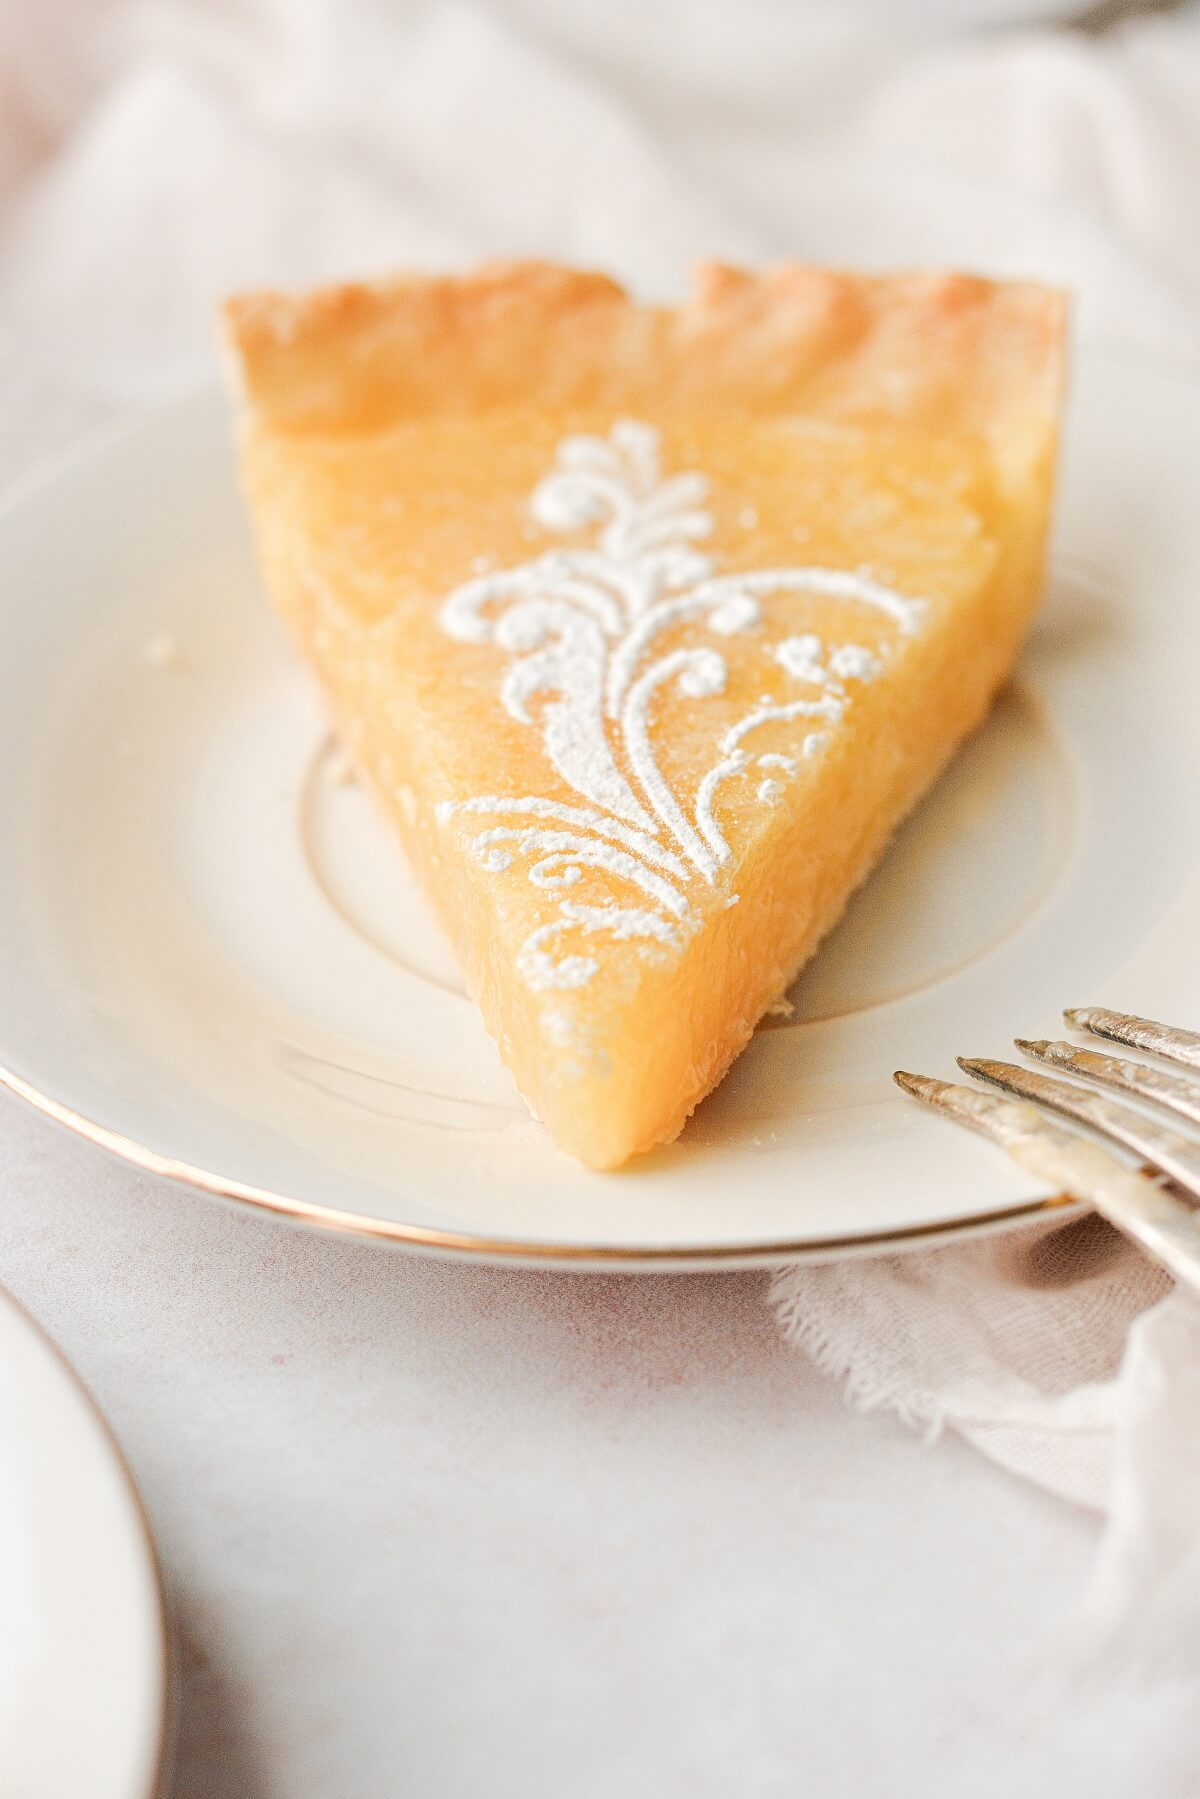 A slice of lemon tart with a powdered sugar stencil on top.